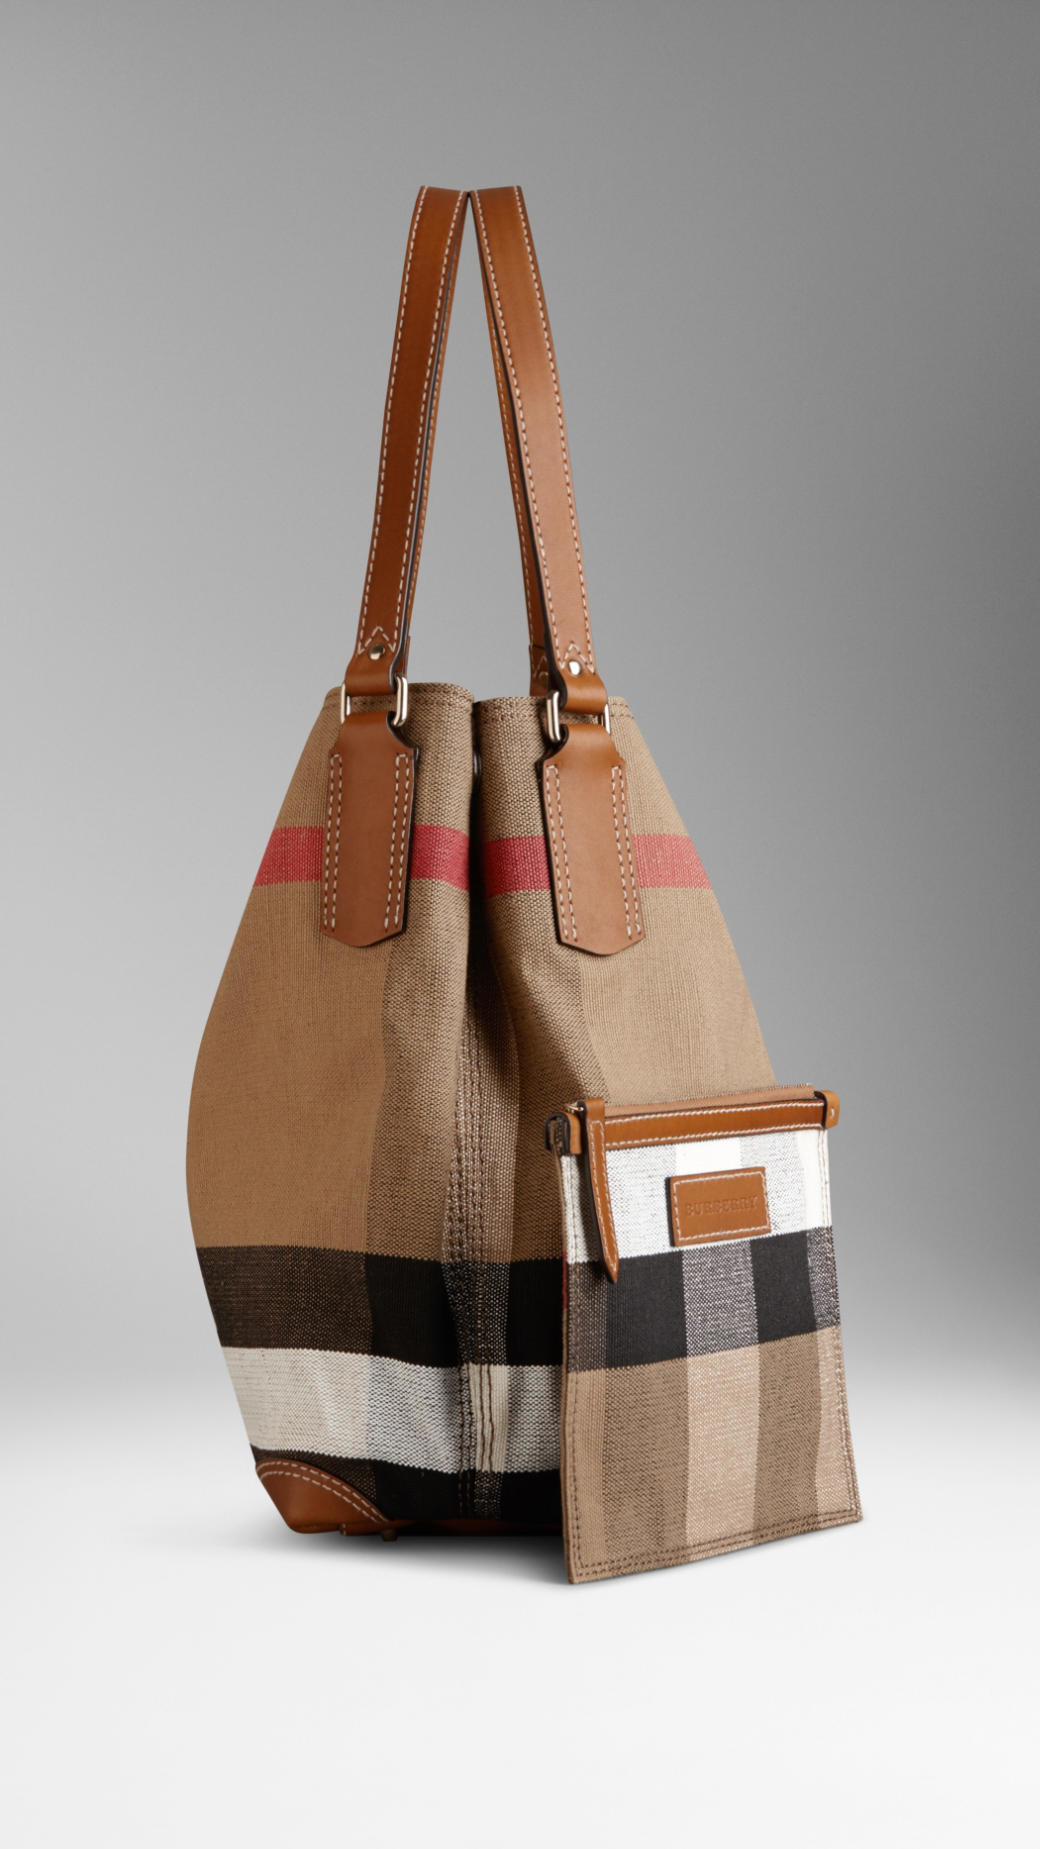 f44a4f80fe0 Burberry Medium Canvas Check Tote Bag in Brown - Lyst